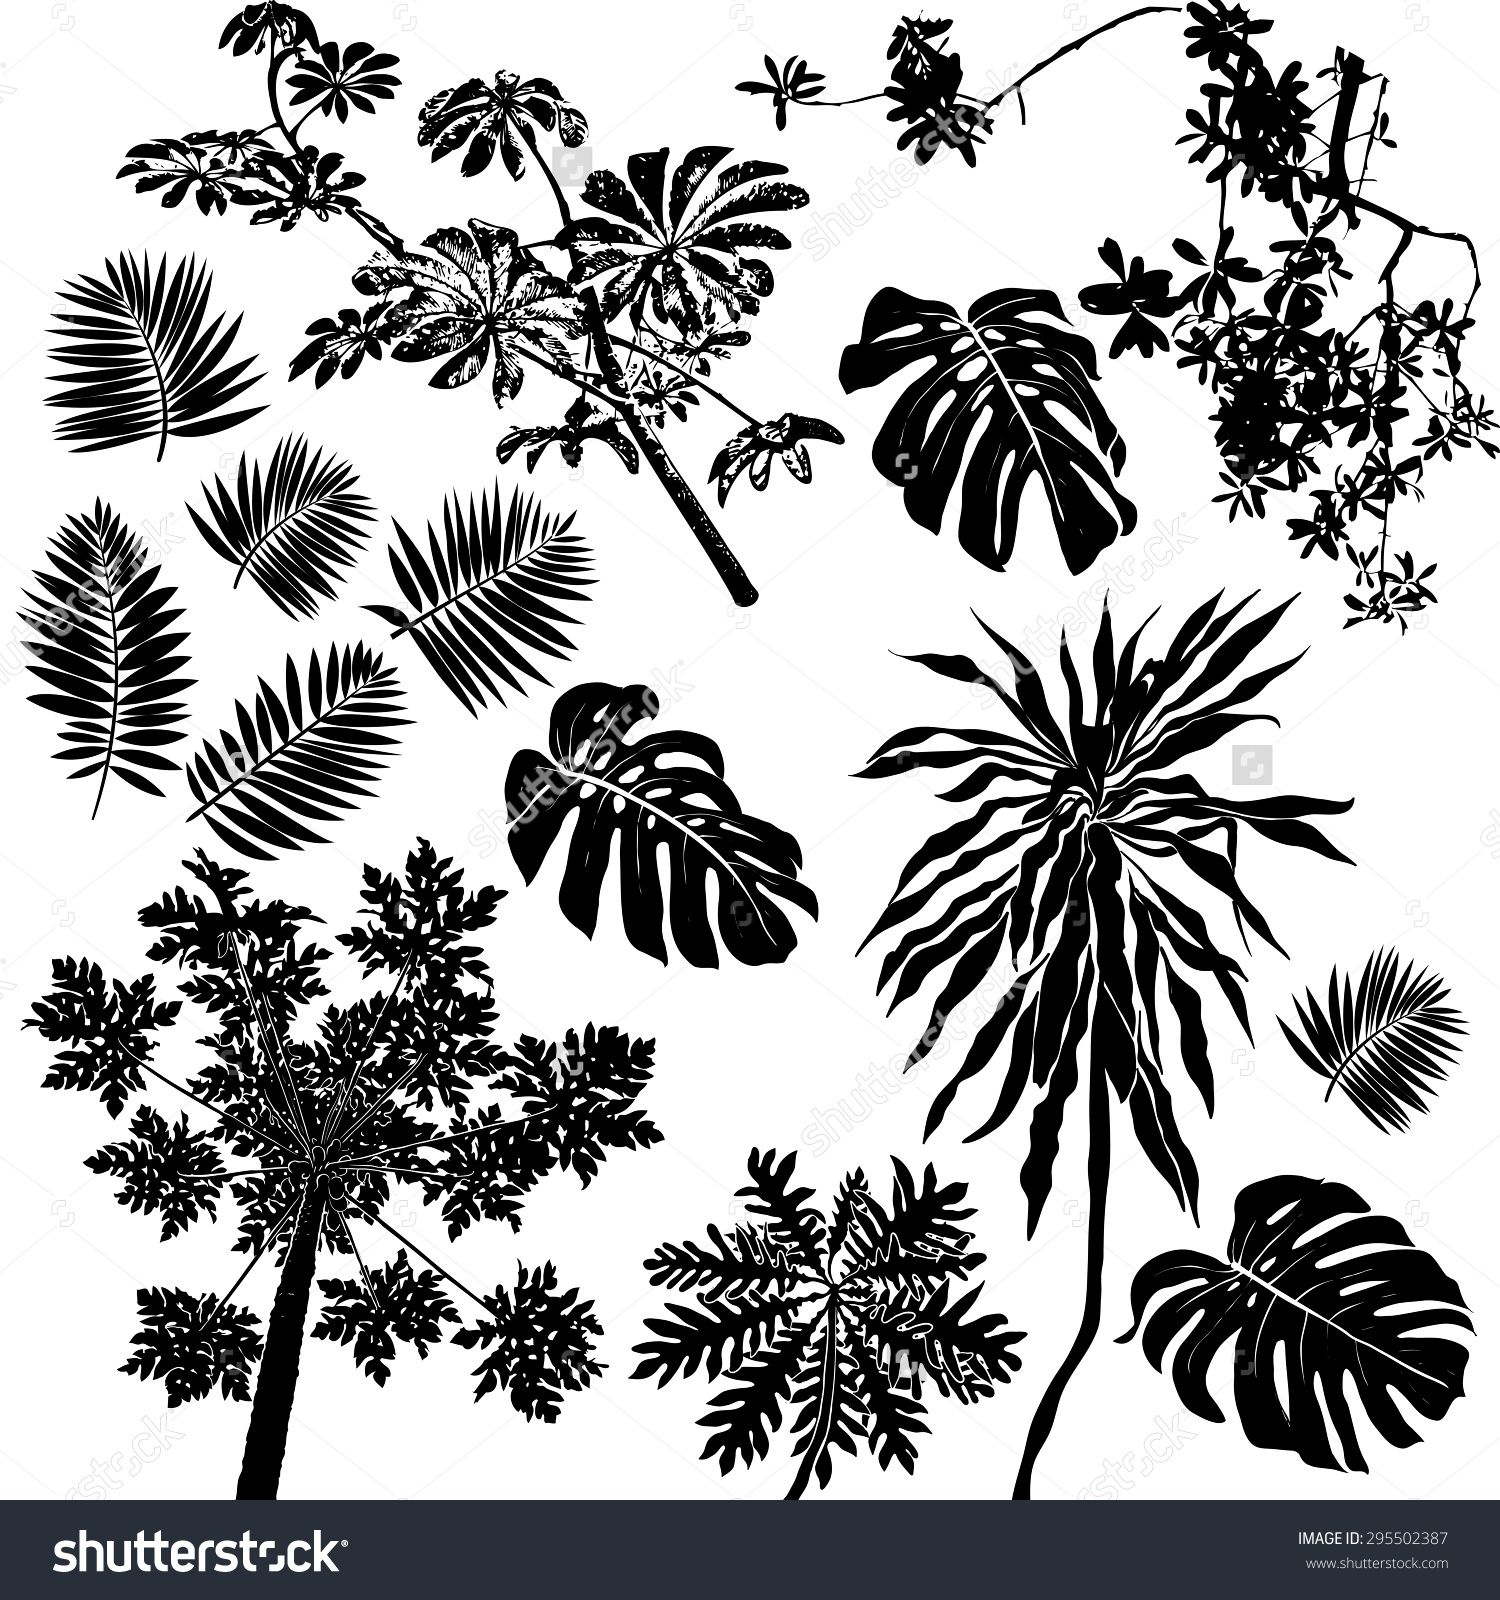 Vector Set Black Silhouettes Tropical Leaves Palms Trees